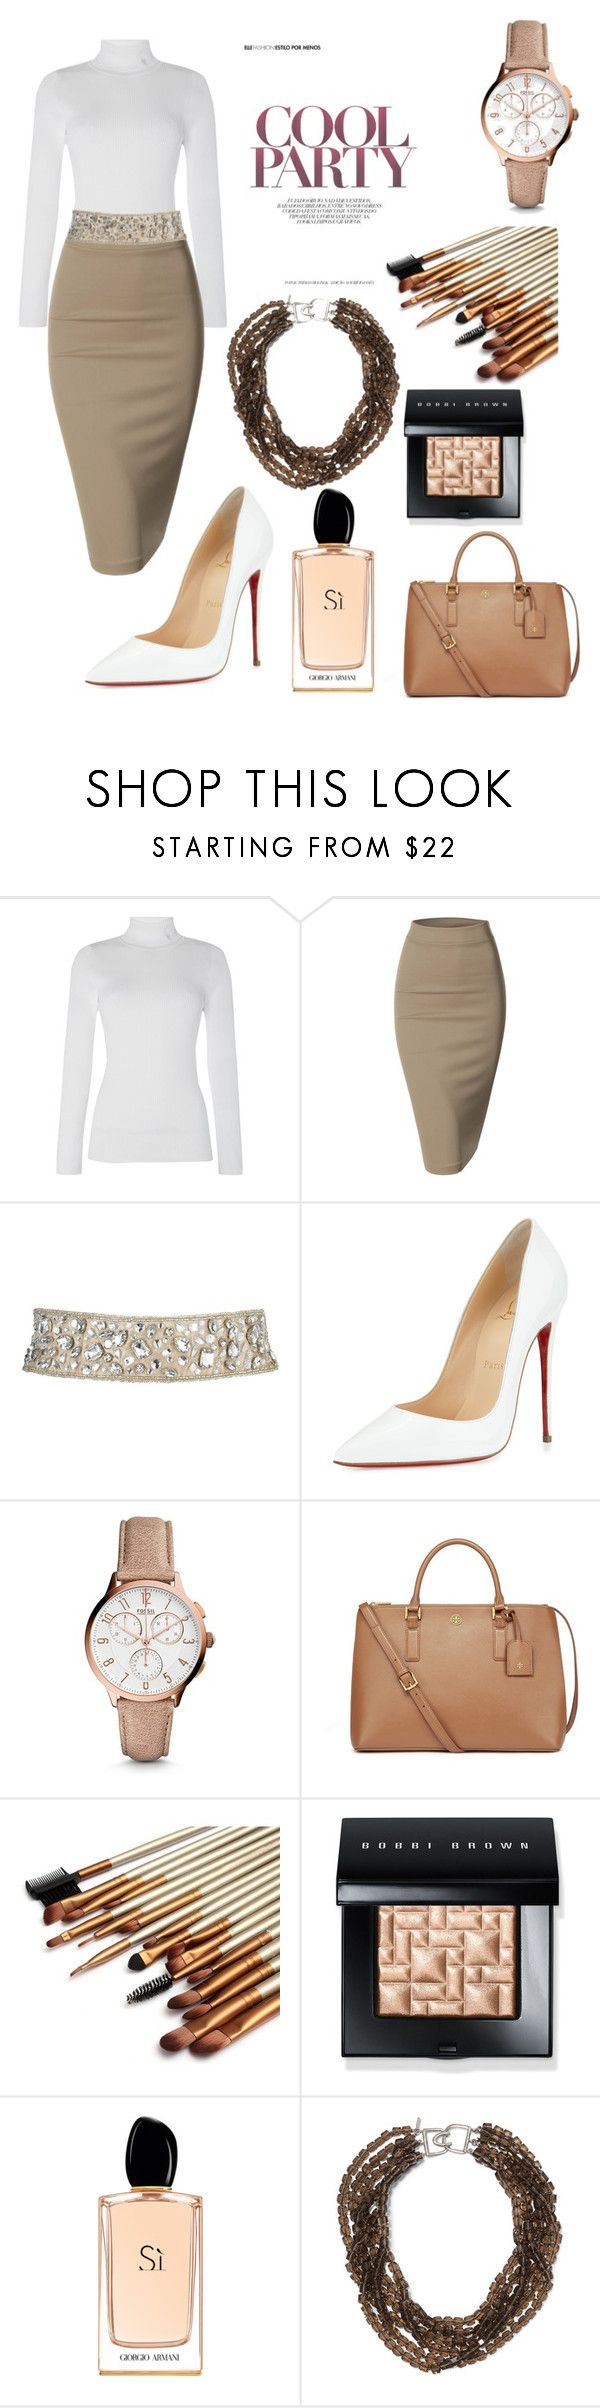 """""""Party Night"""" by hopepurple123 ❤ liked on Polyvore featuring Lauren Ralph Lauren, Doublju, Christian Louboutin, FOSSIL, Tory Burch, Bobbi Brown Cosmetics, Giorgio Armani, Kenneth Jay Lane, women's clothing and women"""